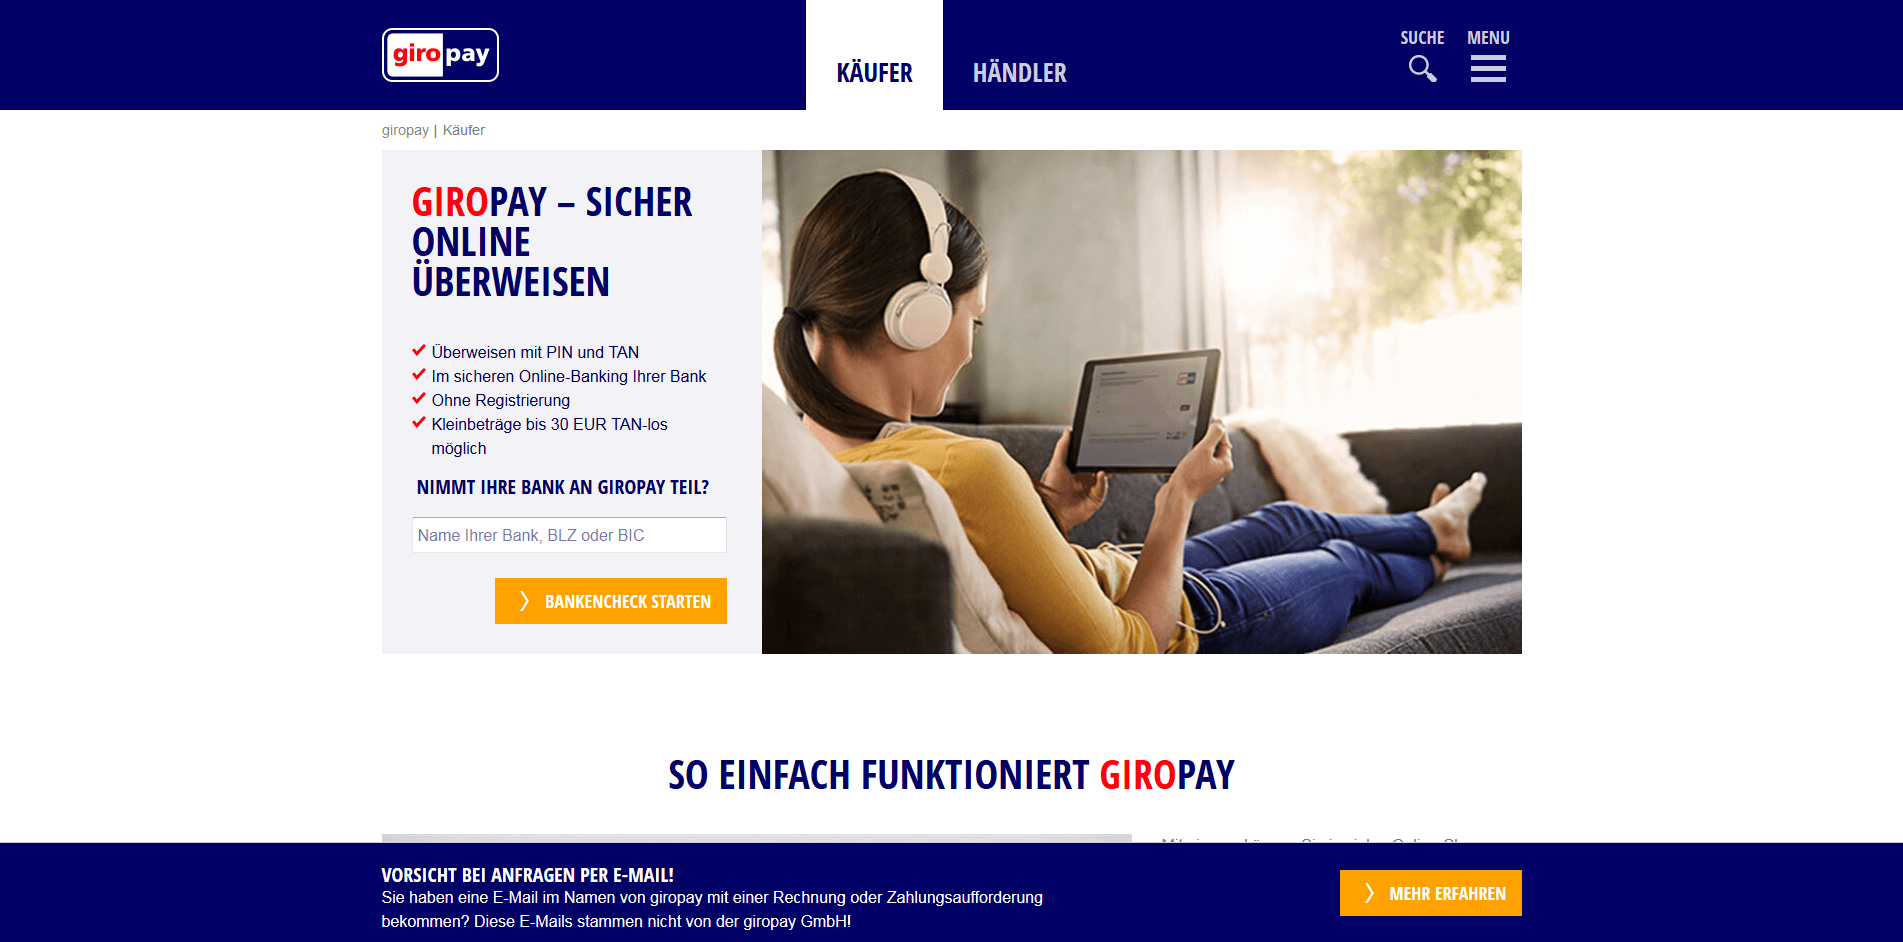 Alternativen Zu Paypal